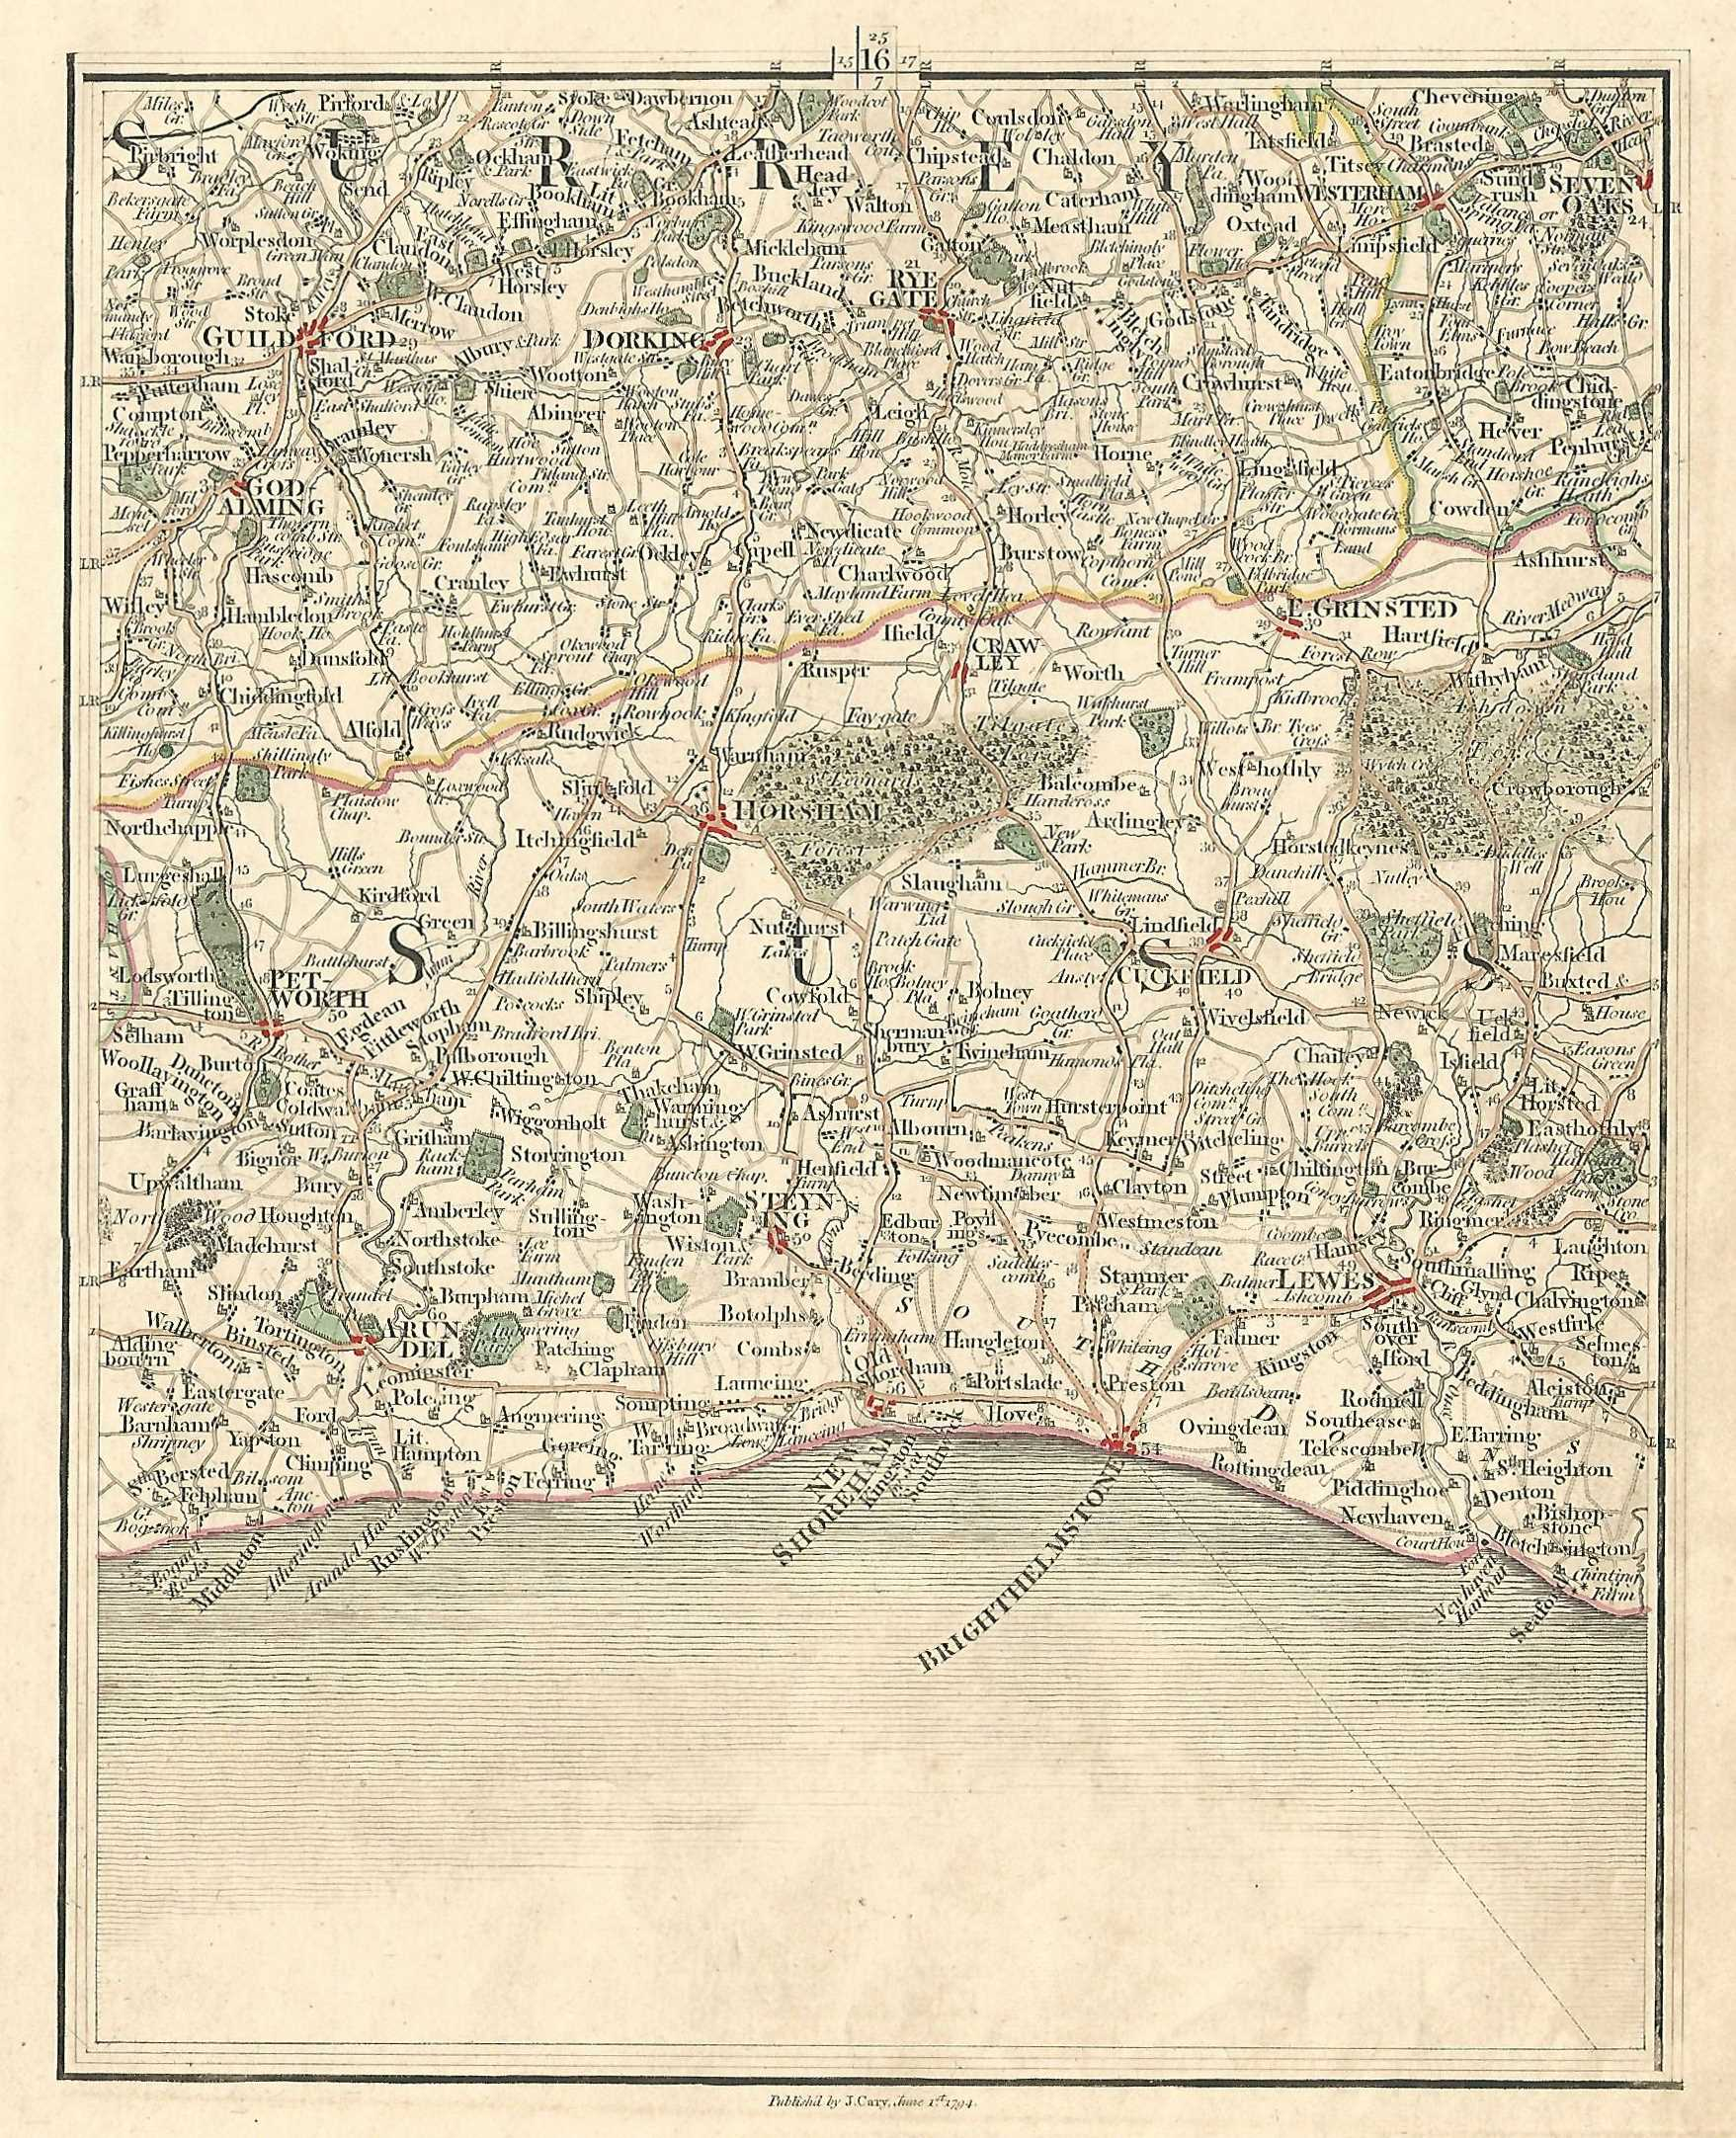 Sussex Surrey Georgian Antique Map Published 1794 By John Cary